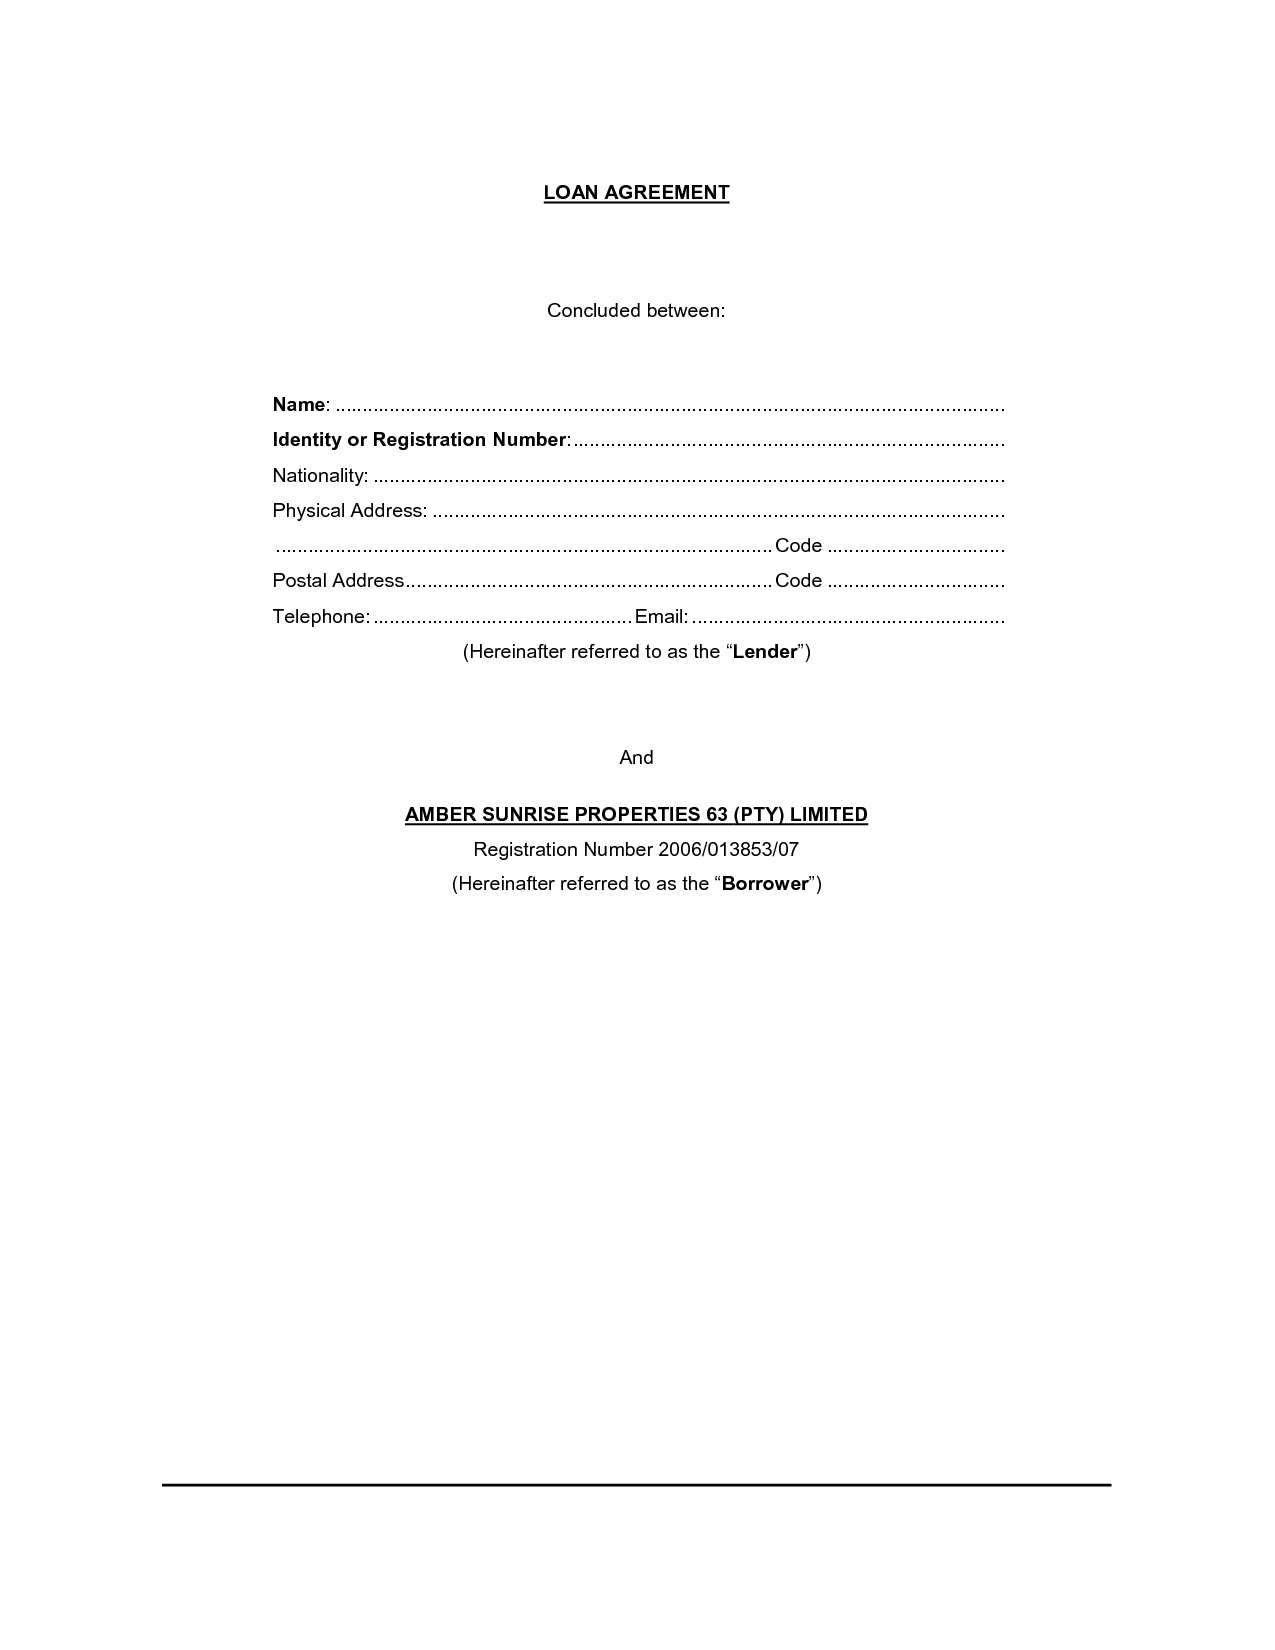 basic loan agreement – Financial Loan Agreement Template